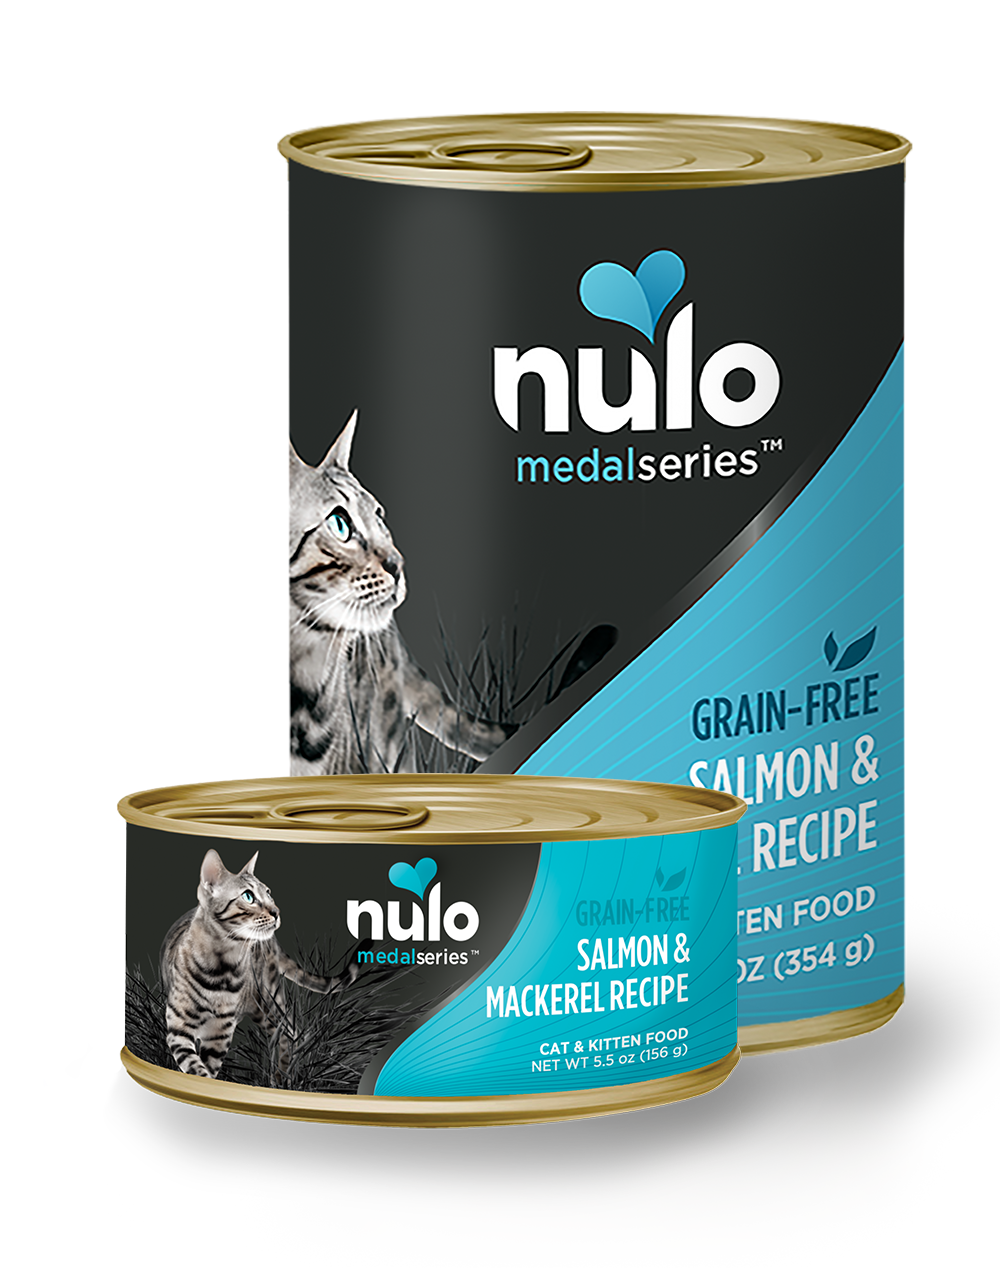 Nulo medalseries cat salmon can